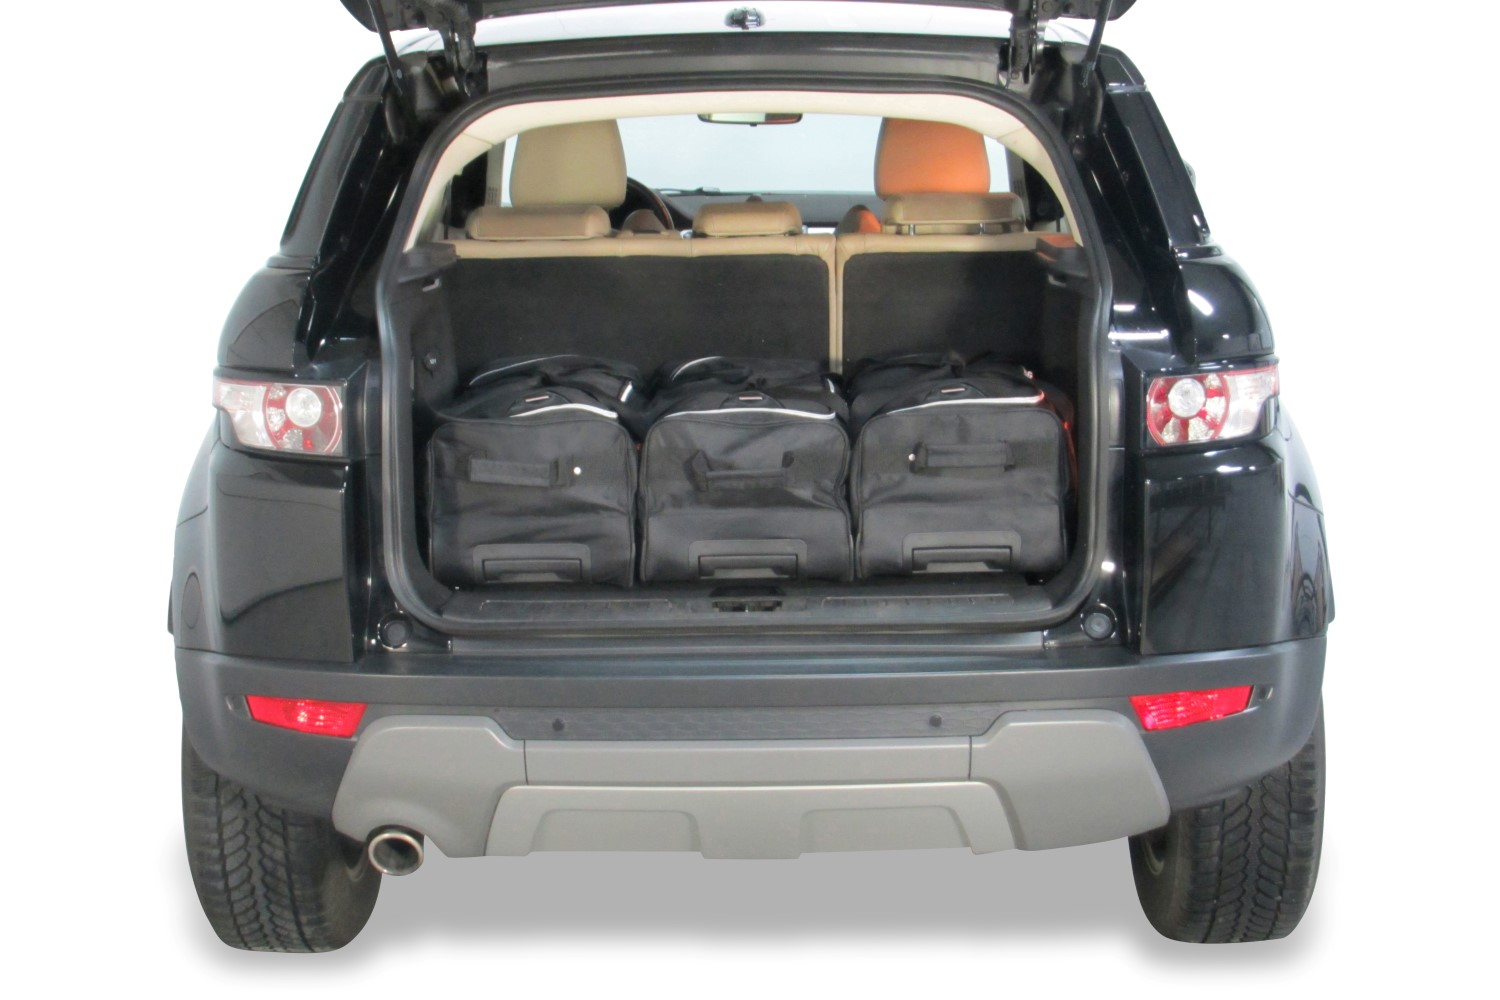 range rover evoque range rover evoque l538 2011 pr sent car bags set de sacs de voyage. Black Bedroom Furniture Sets. Home Design Ideas